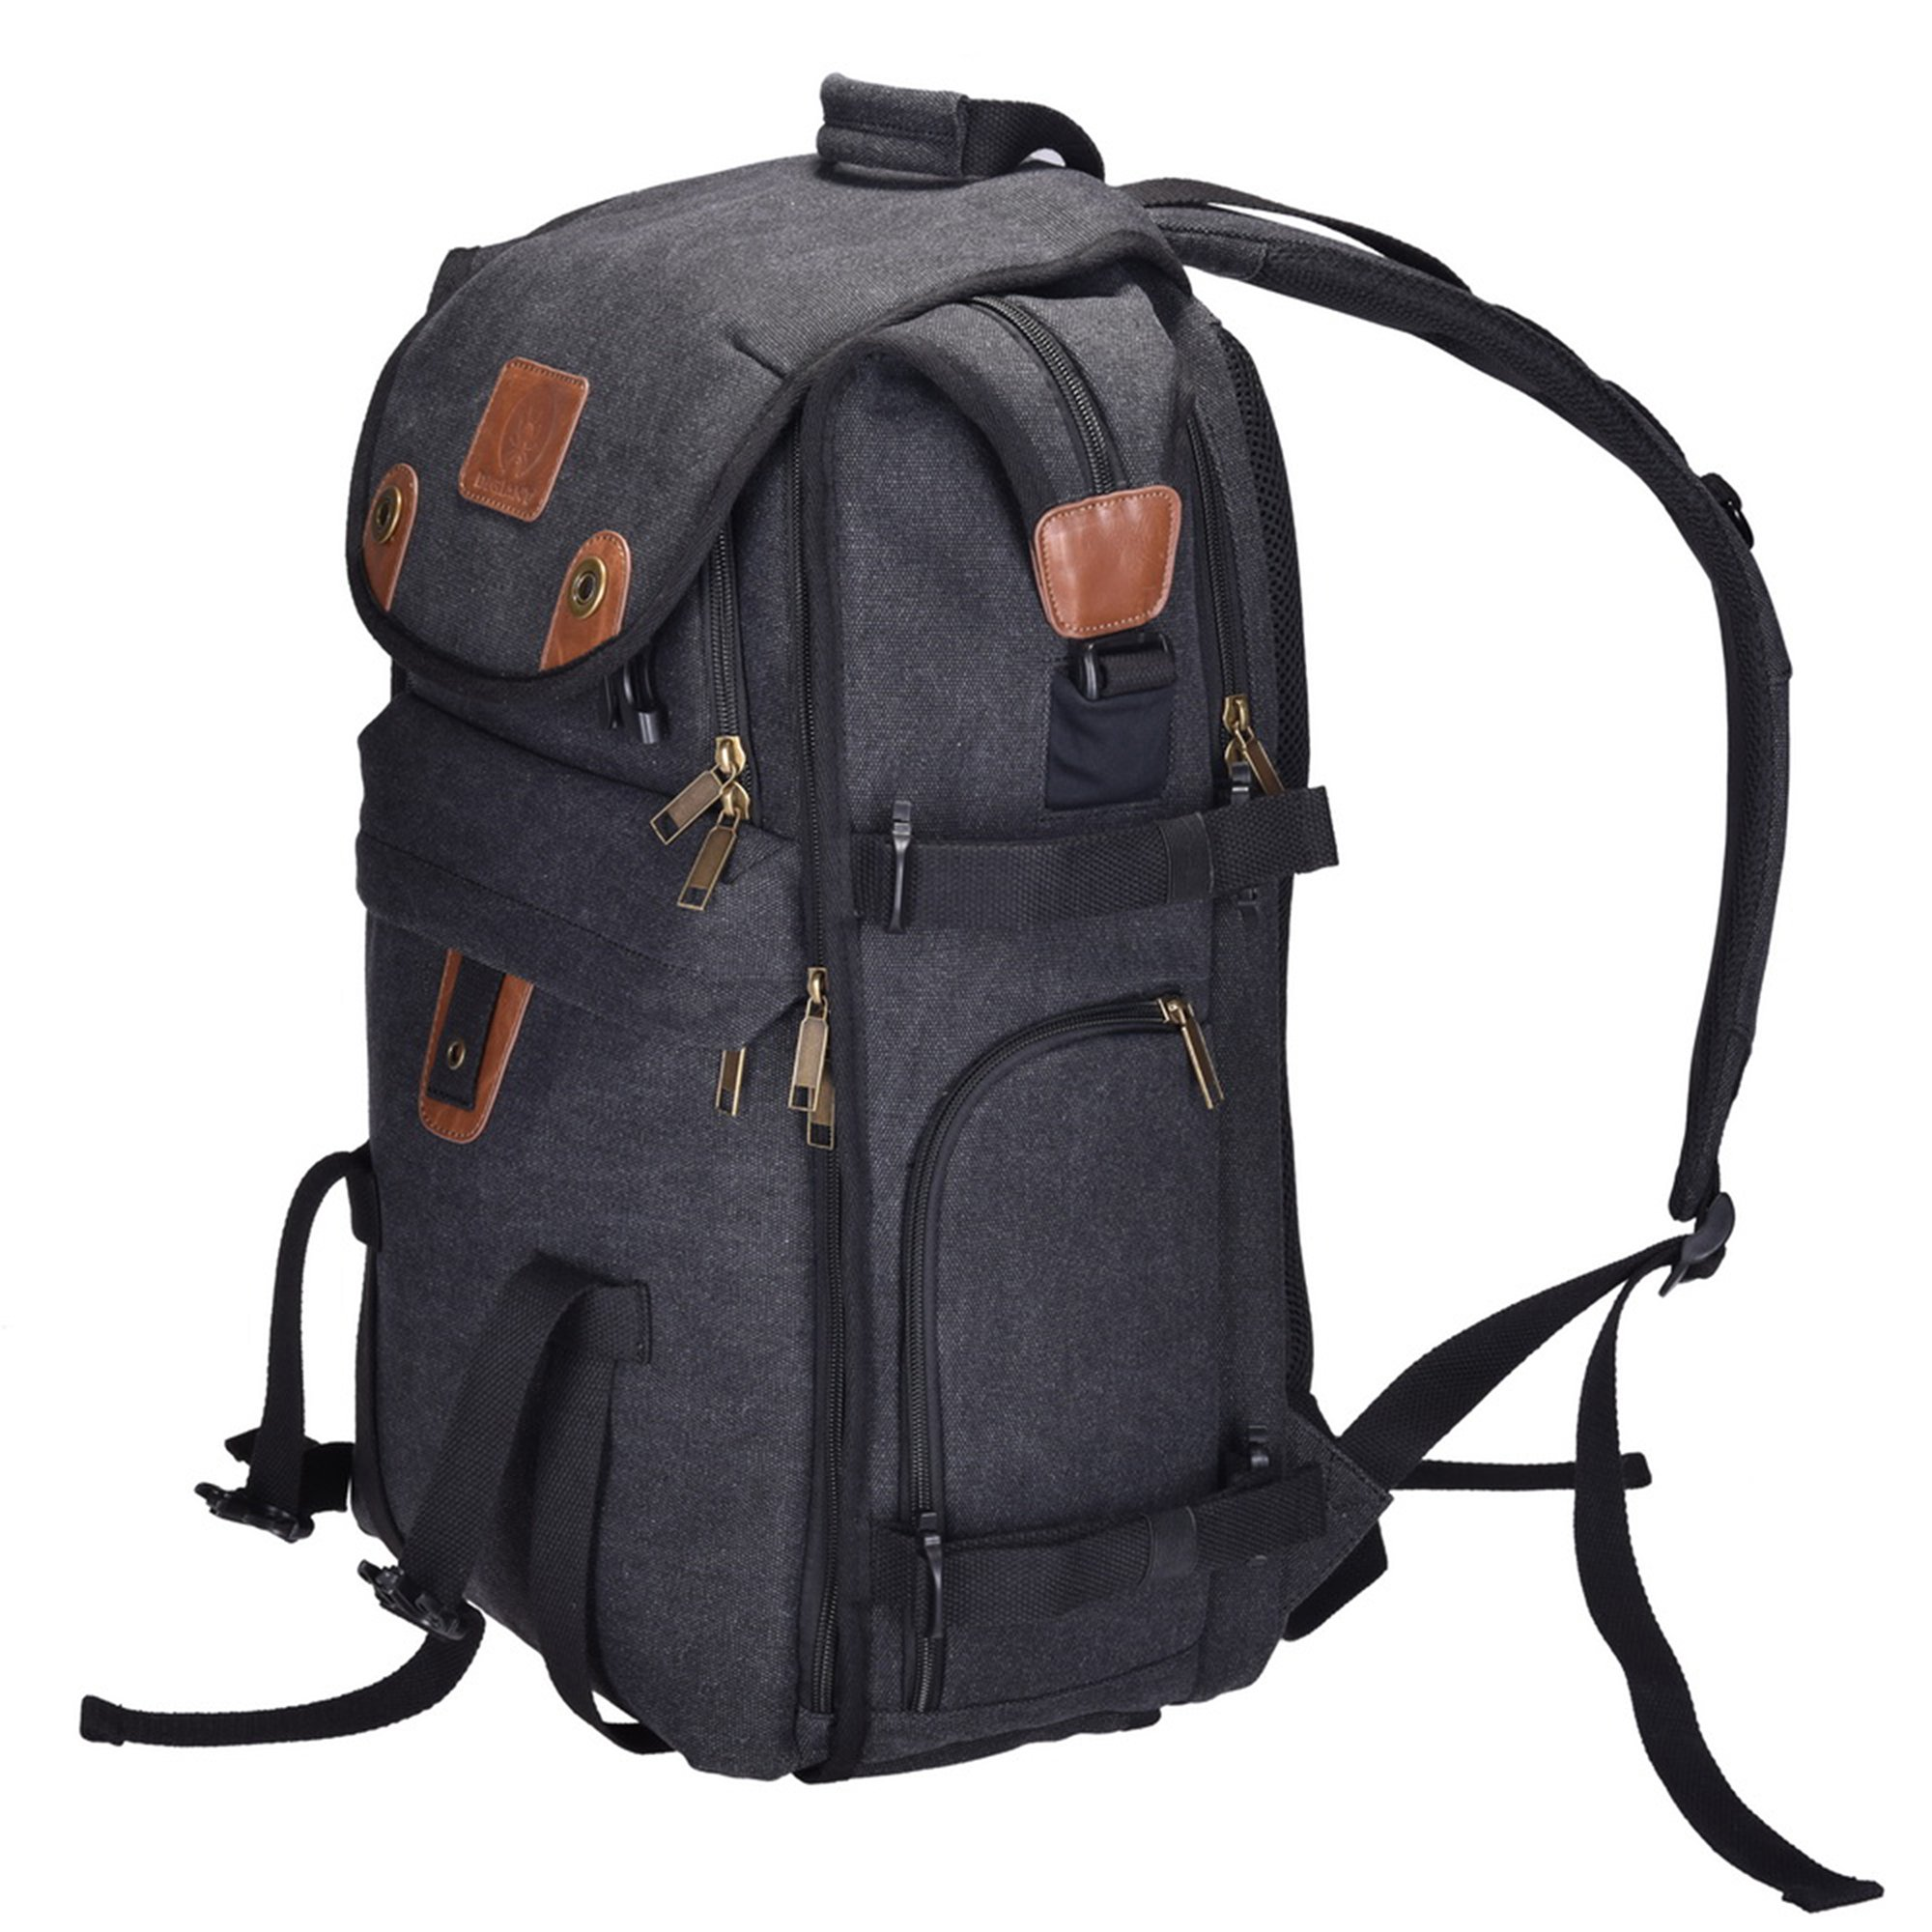 """Camera Bag, DIGIANT 21"""" x 7.8"""" x 13.5"""" DSLR Backpack Canvas Camera Case with Rain Cover, Camera Backpack Rucksack for Cameras, Lenses, Laptop/Tablet & Photography Accessories by DIGIANT"""